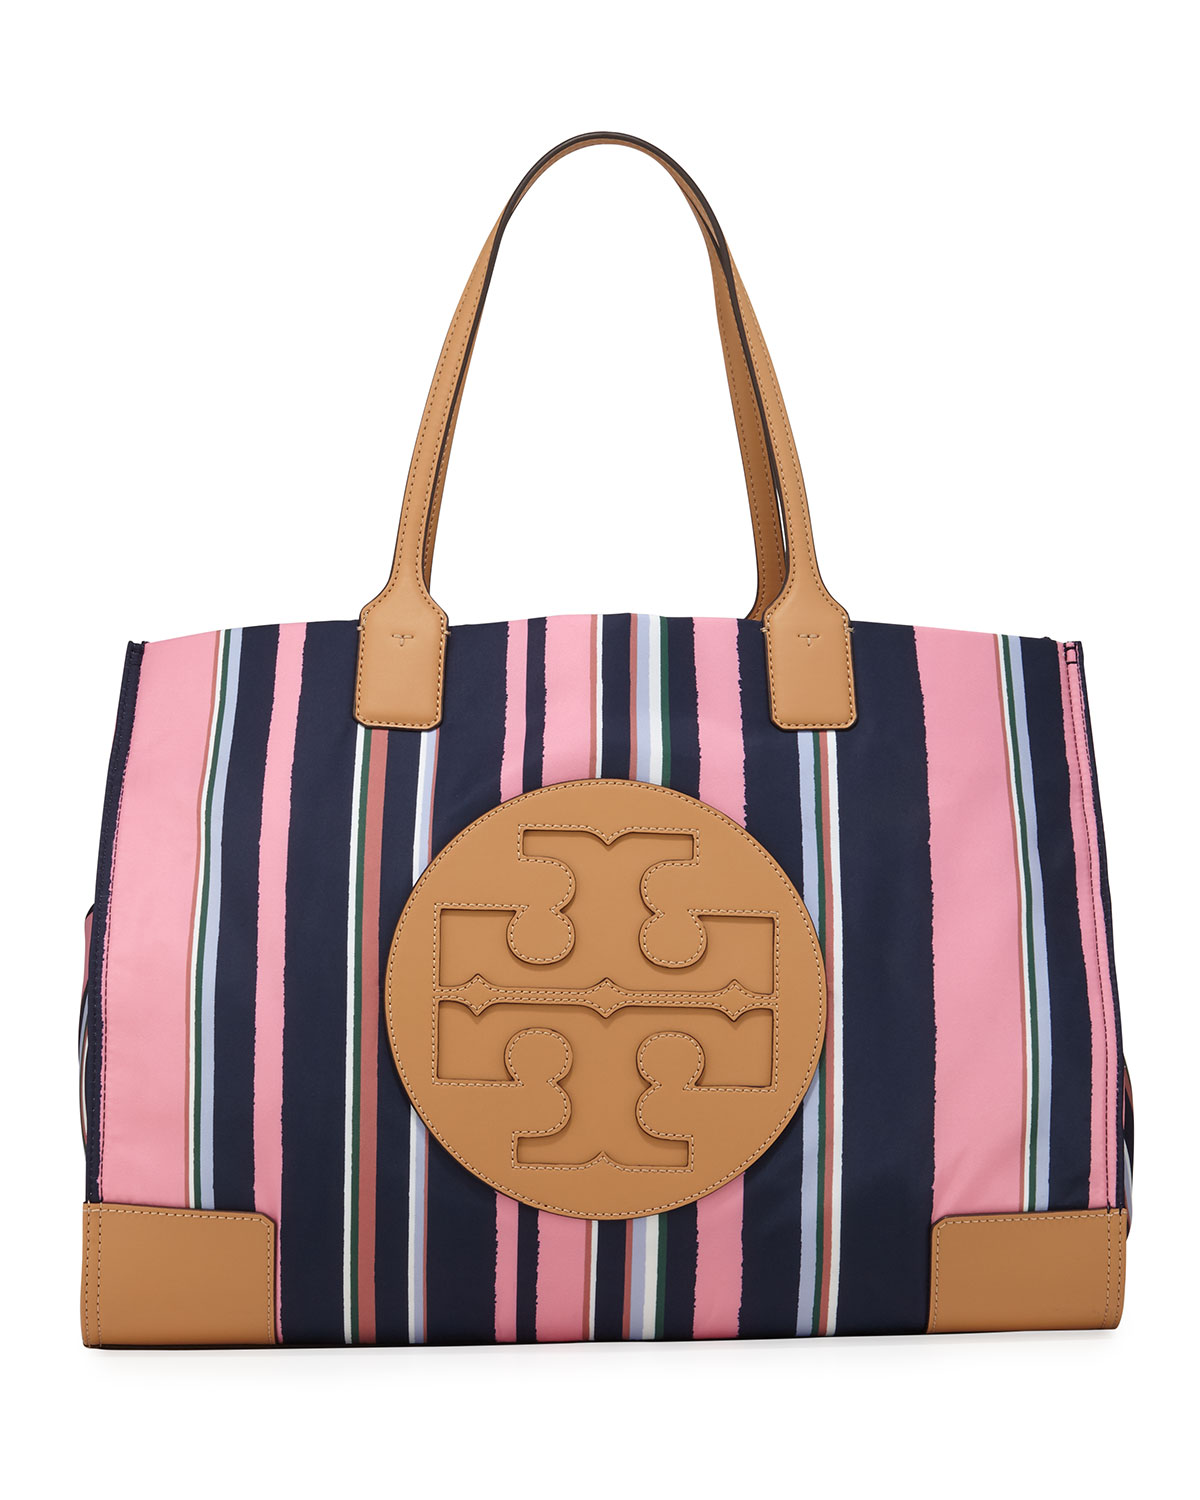 Ella Striped Nylon Tote Bag by Tory Burch